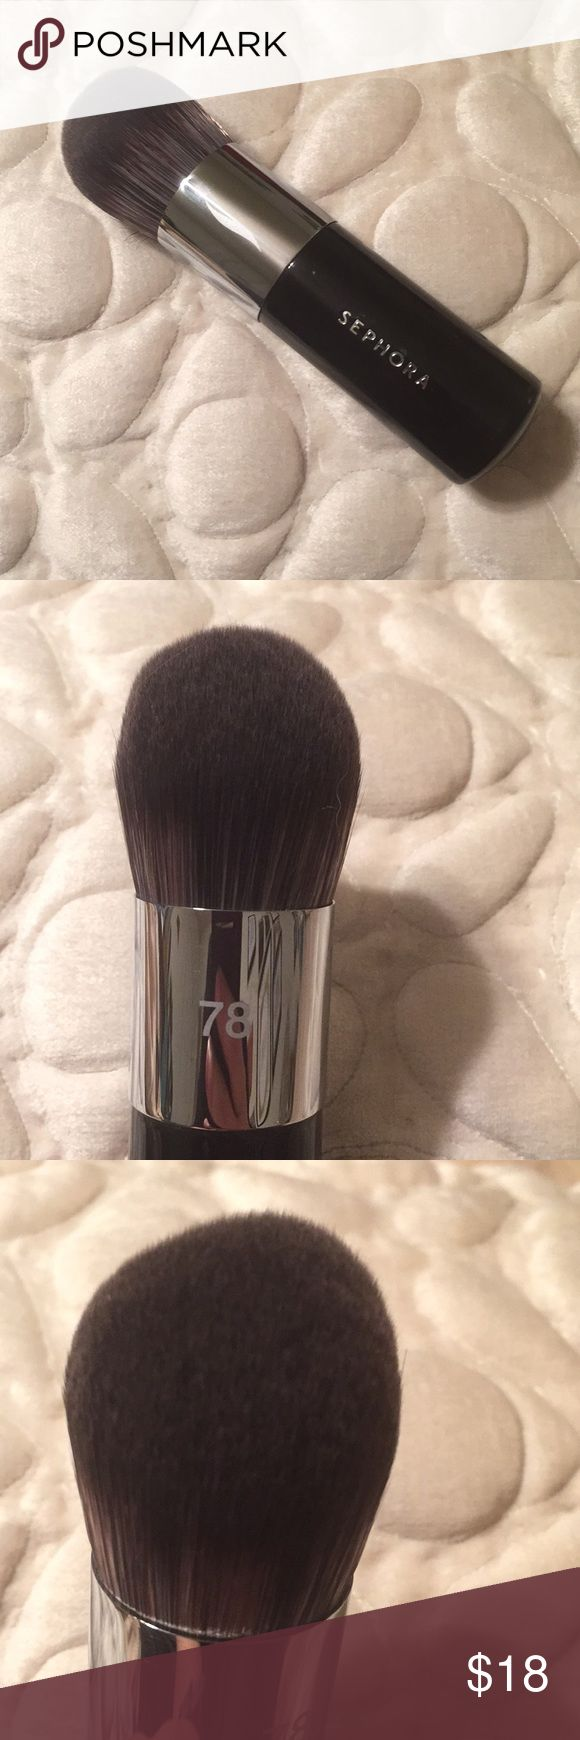 NWOT Sephora brush 78 Sephora brushes, Sephora makeup